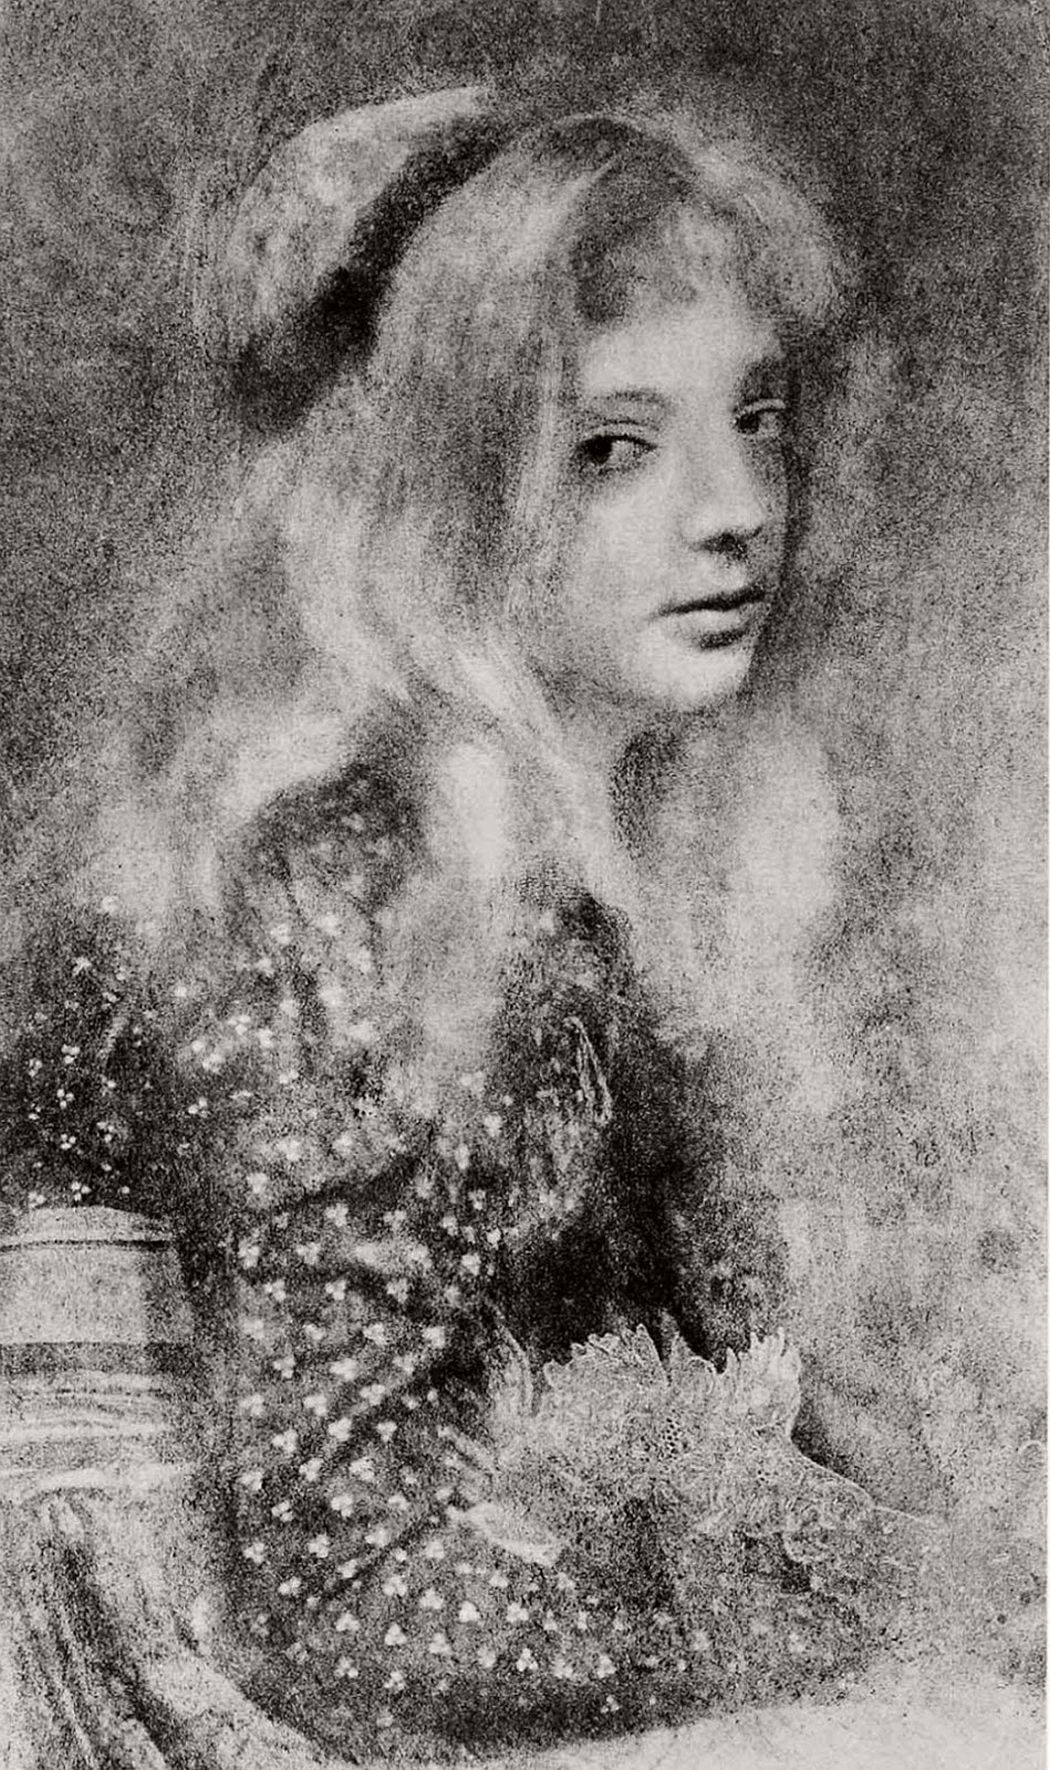 Vintage: Gum Bichromate Process by Robert Demachy (late 19th Century)